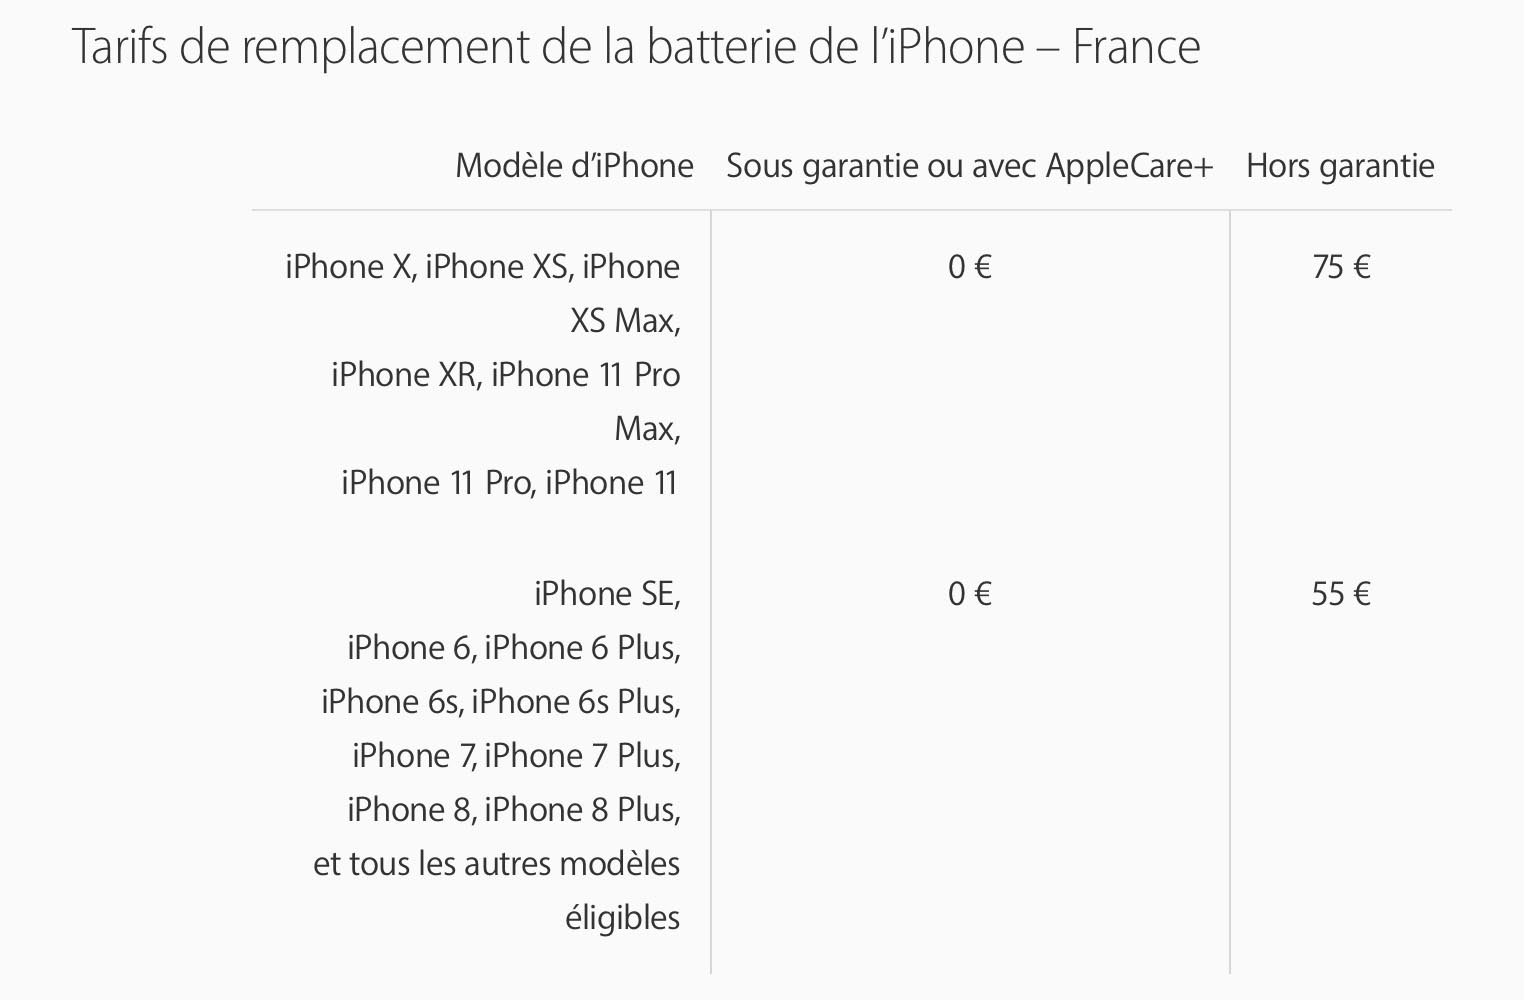 Tarif remplacement batterie iPhone 2019